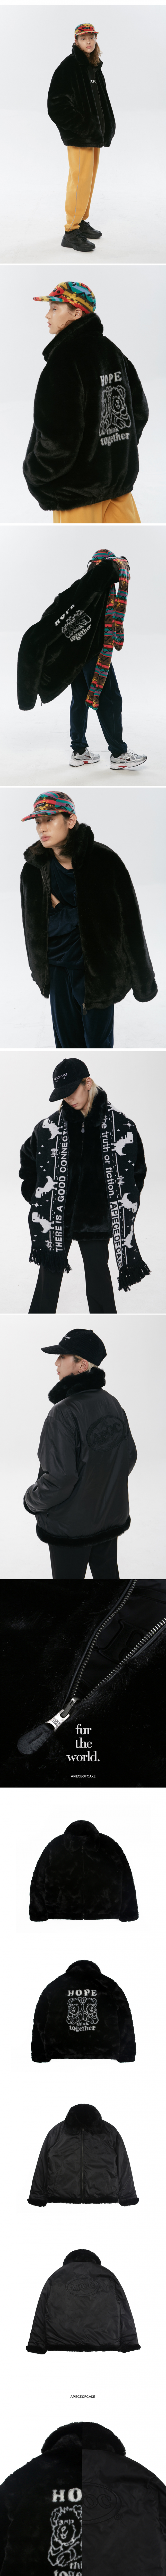 어피스오브케이크(APOC) HTT Fur Jacket_Black